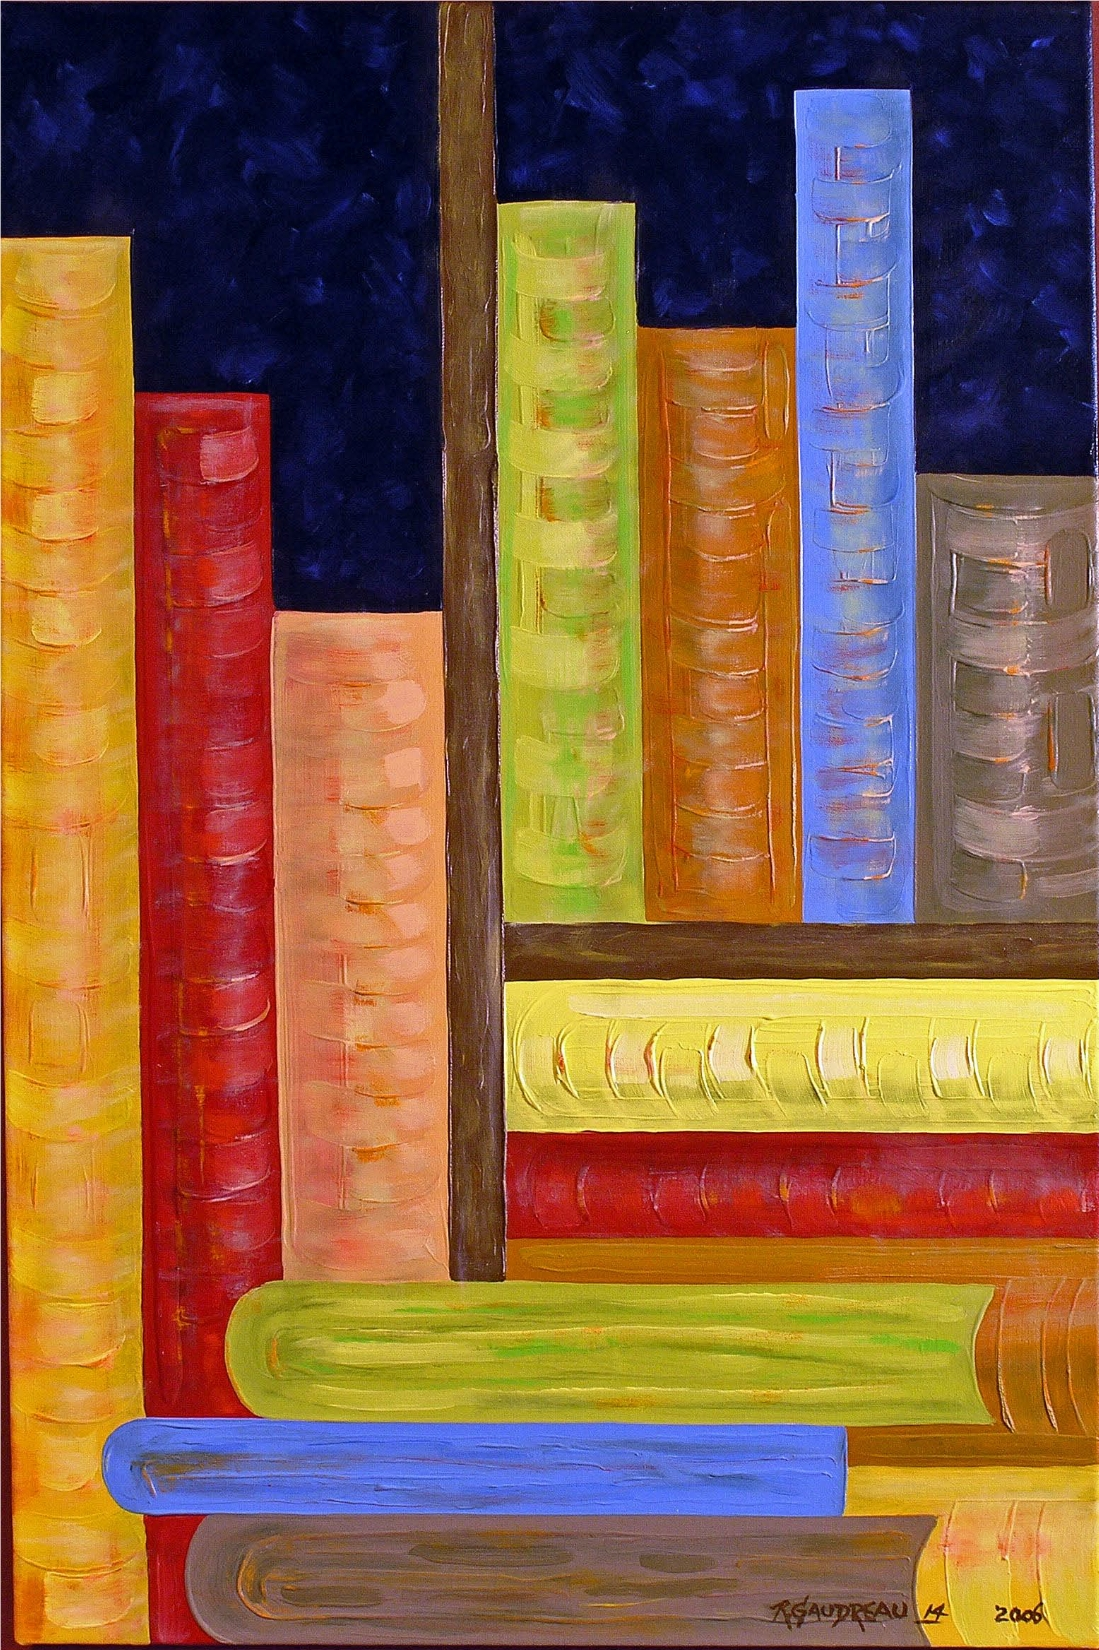 14 Books   2006 oil on canvas 36 x 24 inches